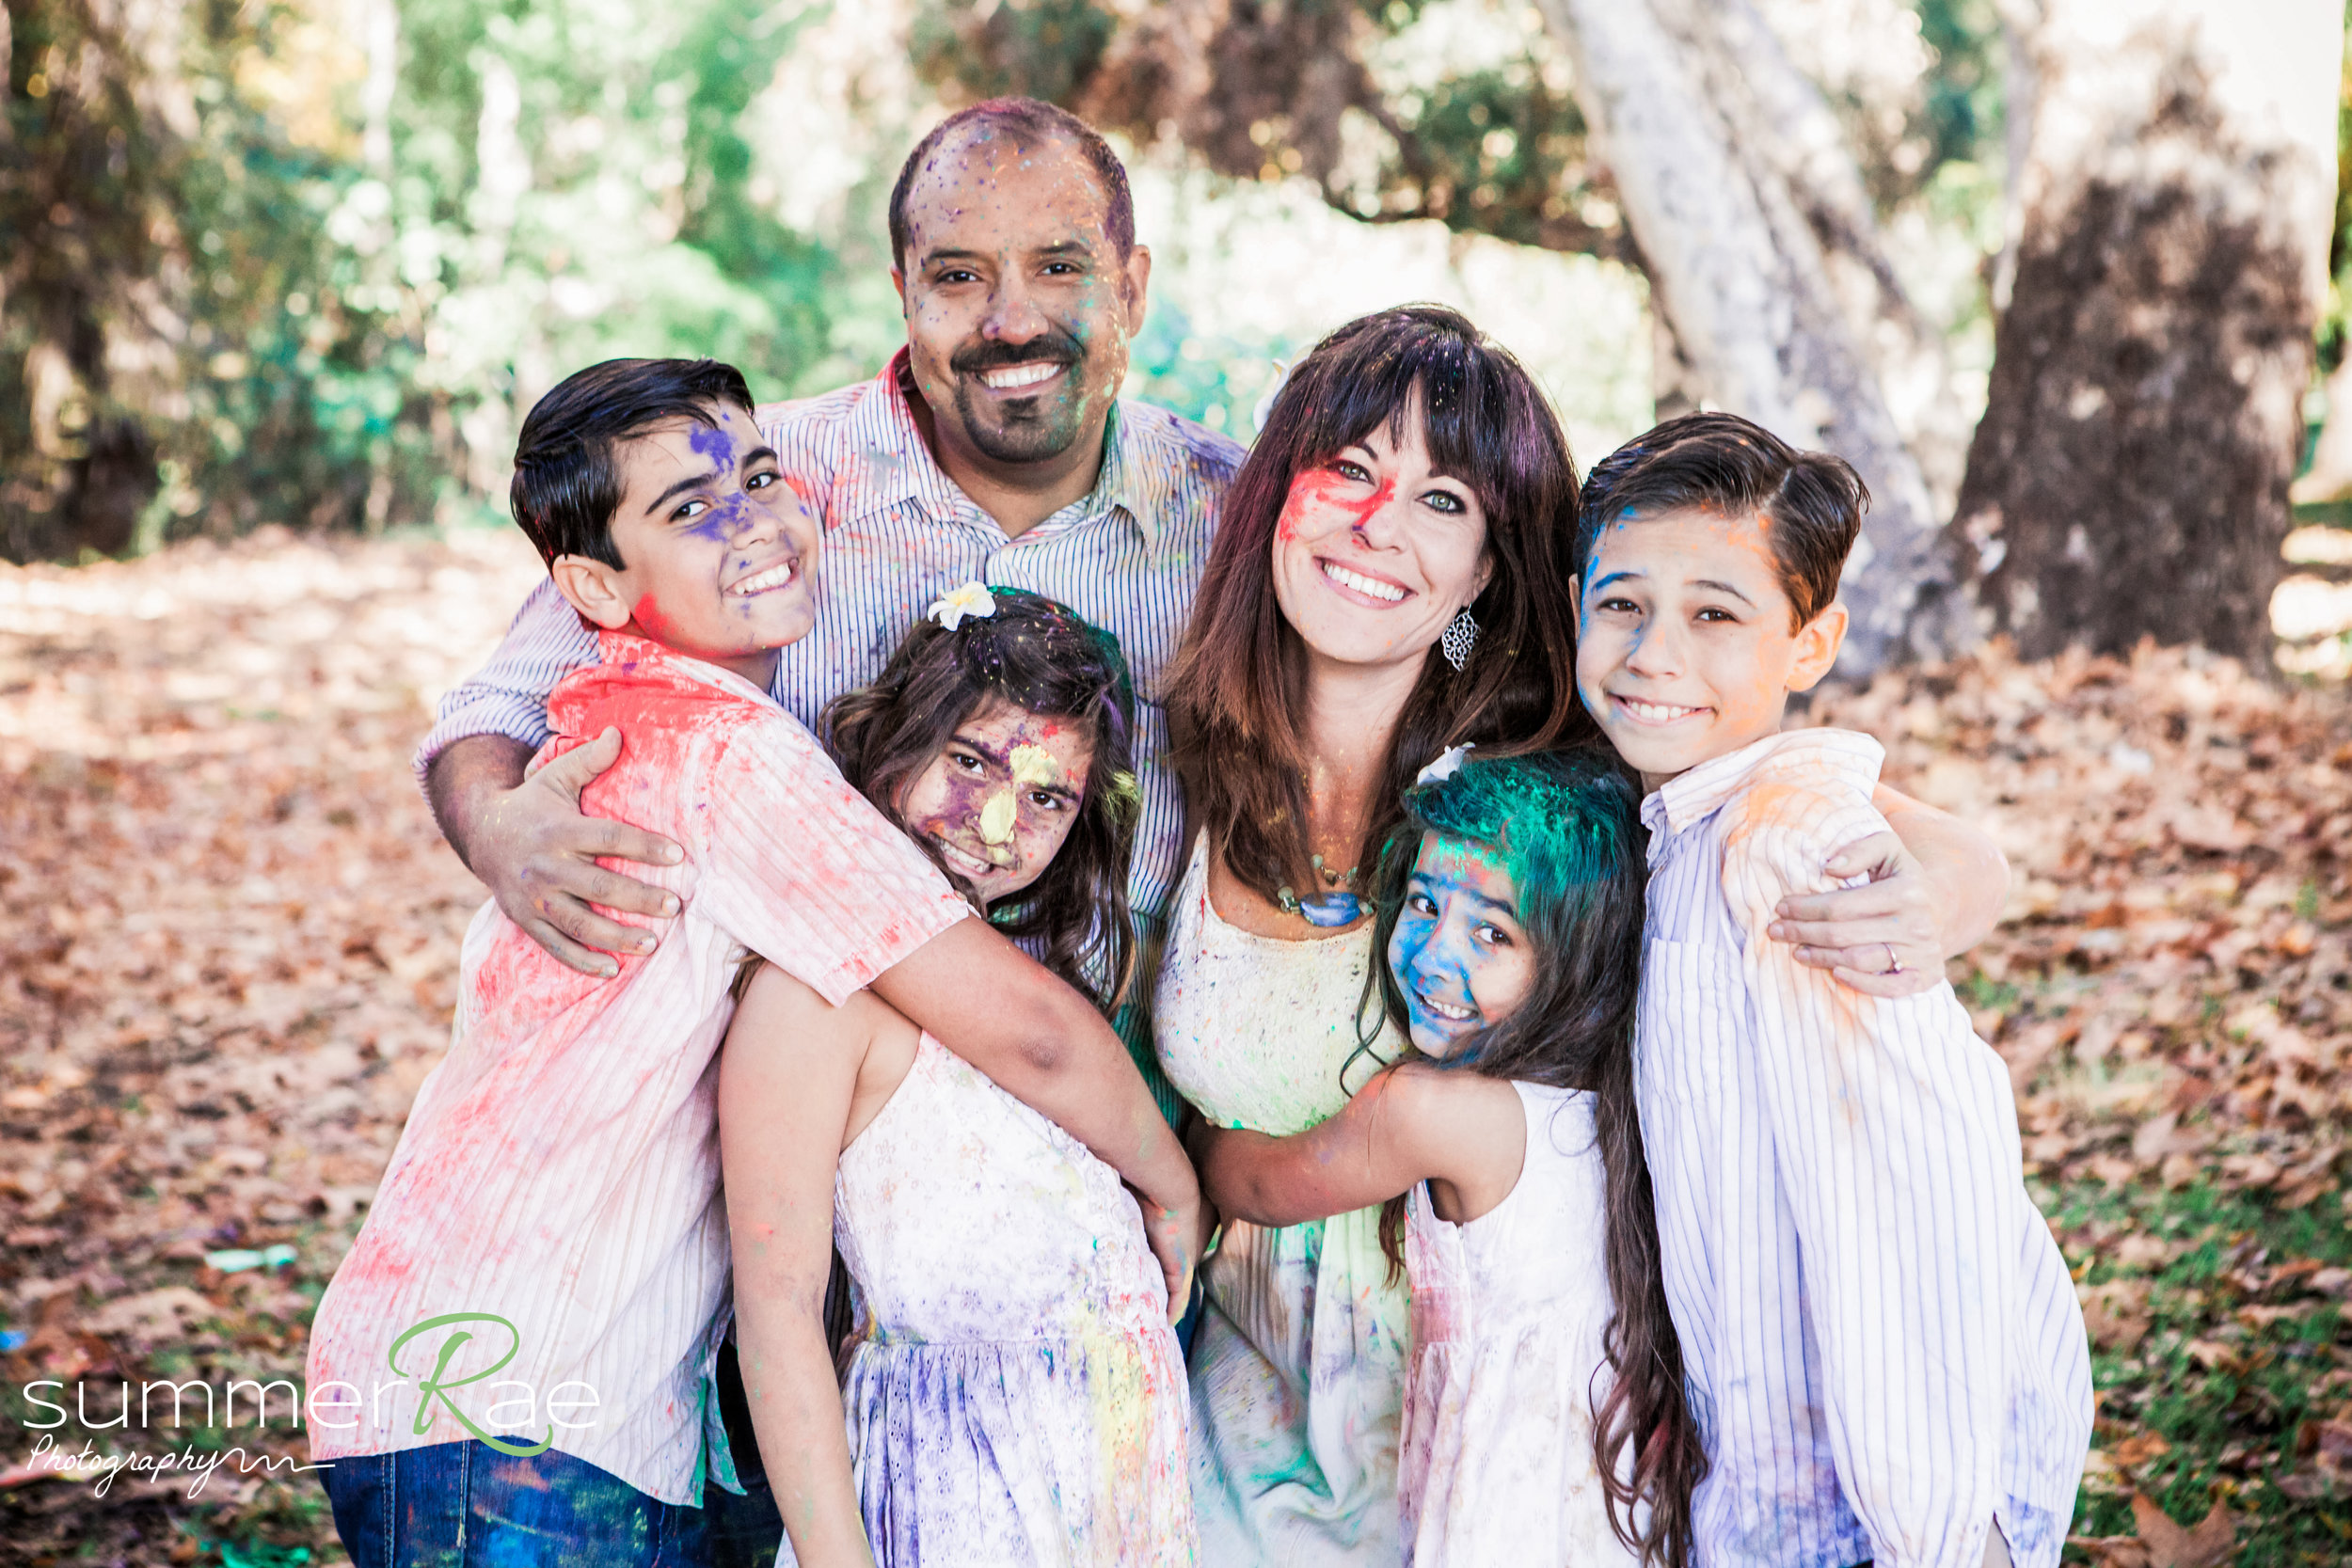 Huge thank you to my friend Beki for capturing my family!